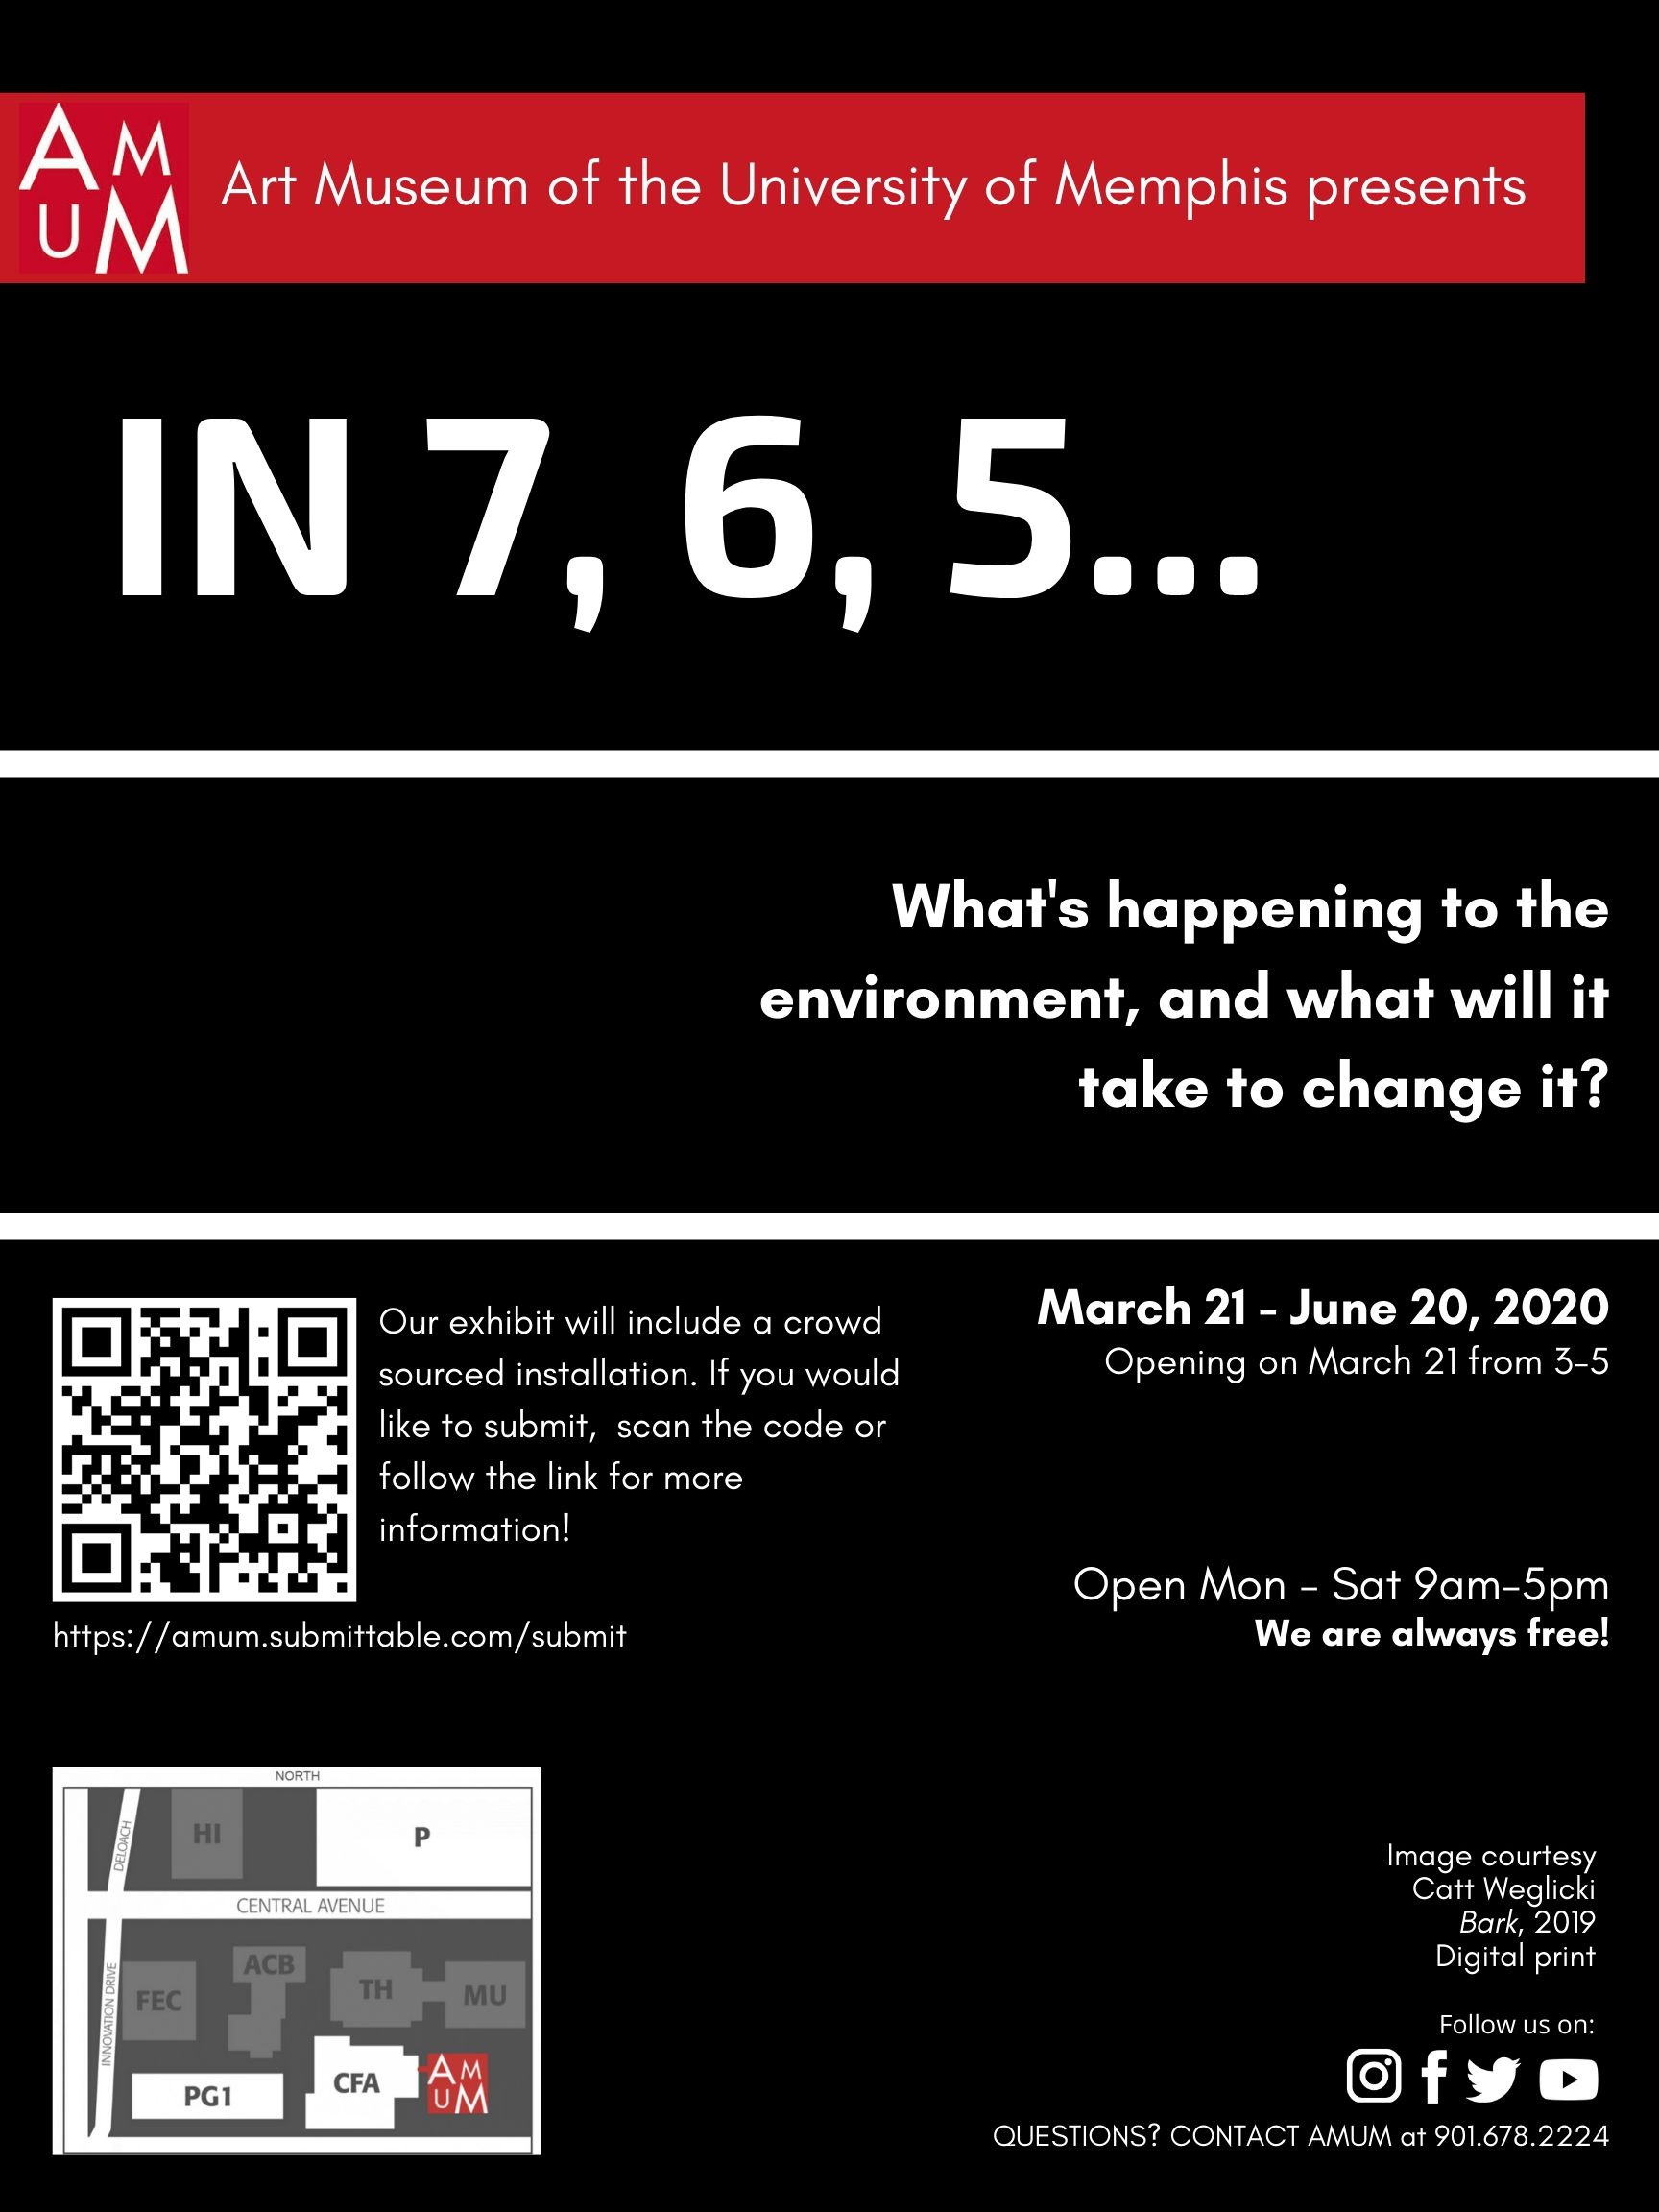 In 7, 6, 5... What's happening to the environment, and what will it take to change it? March 21 - June 20, 2020 Opening on March 21 from 3-5